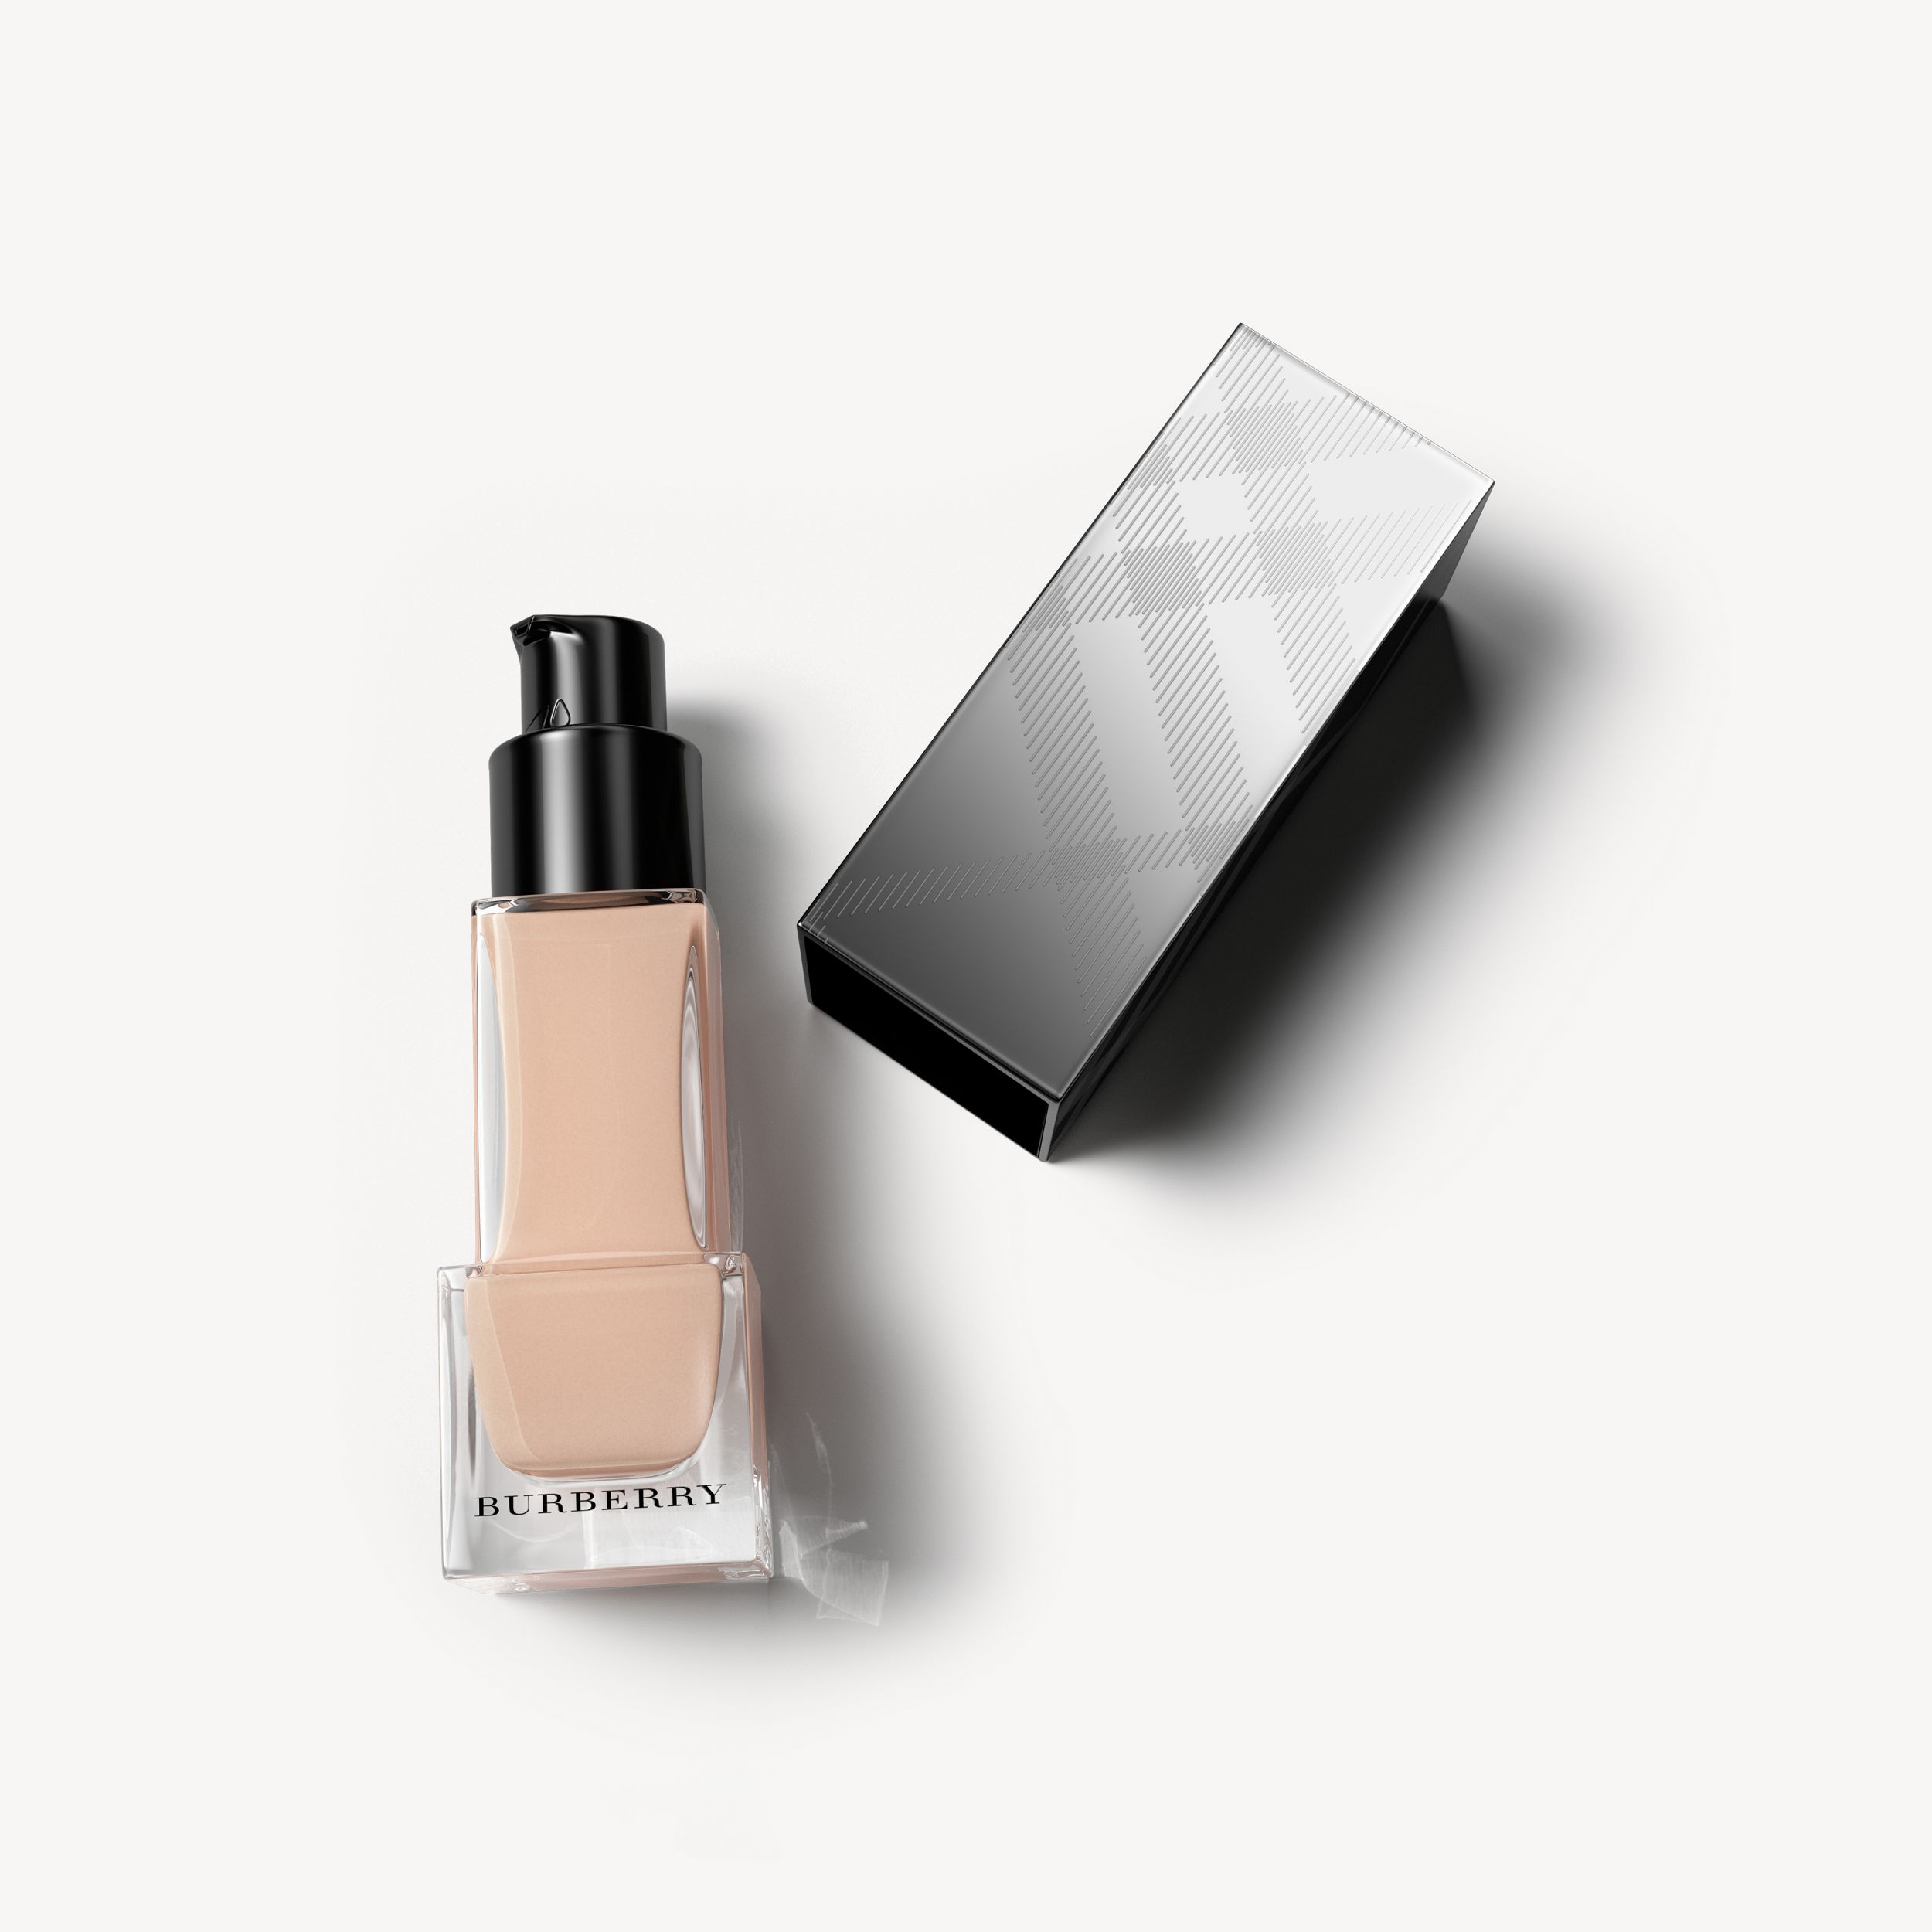 Base de maquillaje Fresh Glow FPS 15, PA+++ – Porcelain No.11 - Mujer | Burberry - 1